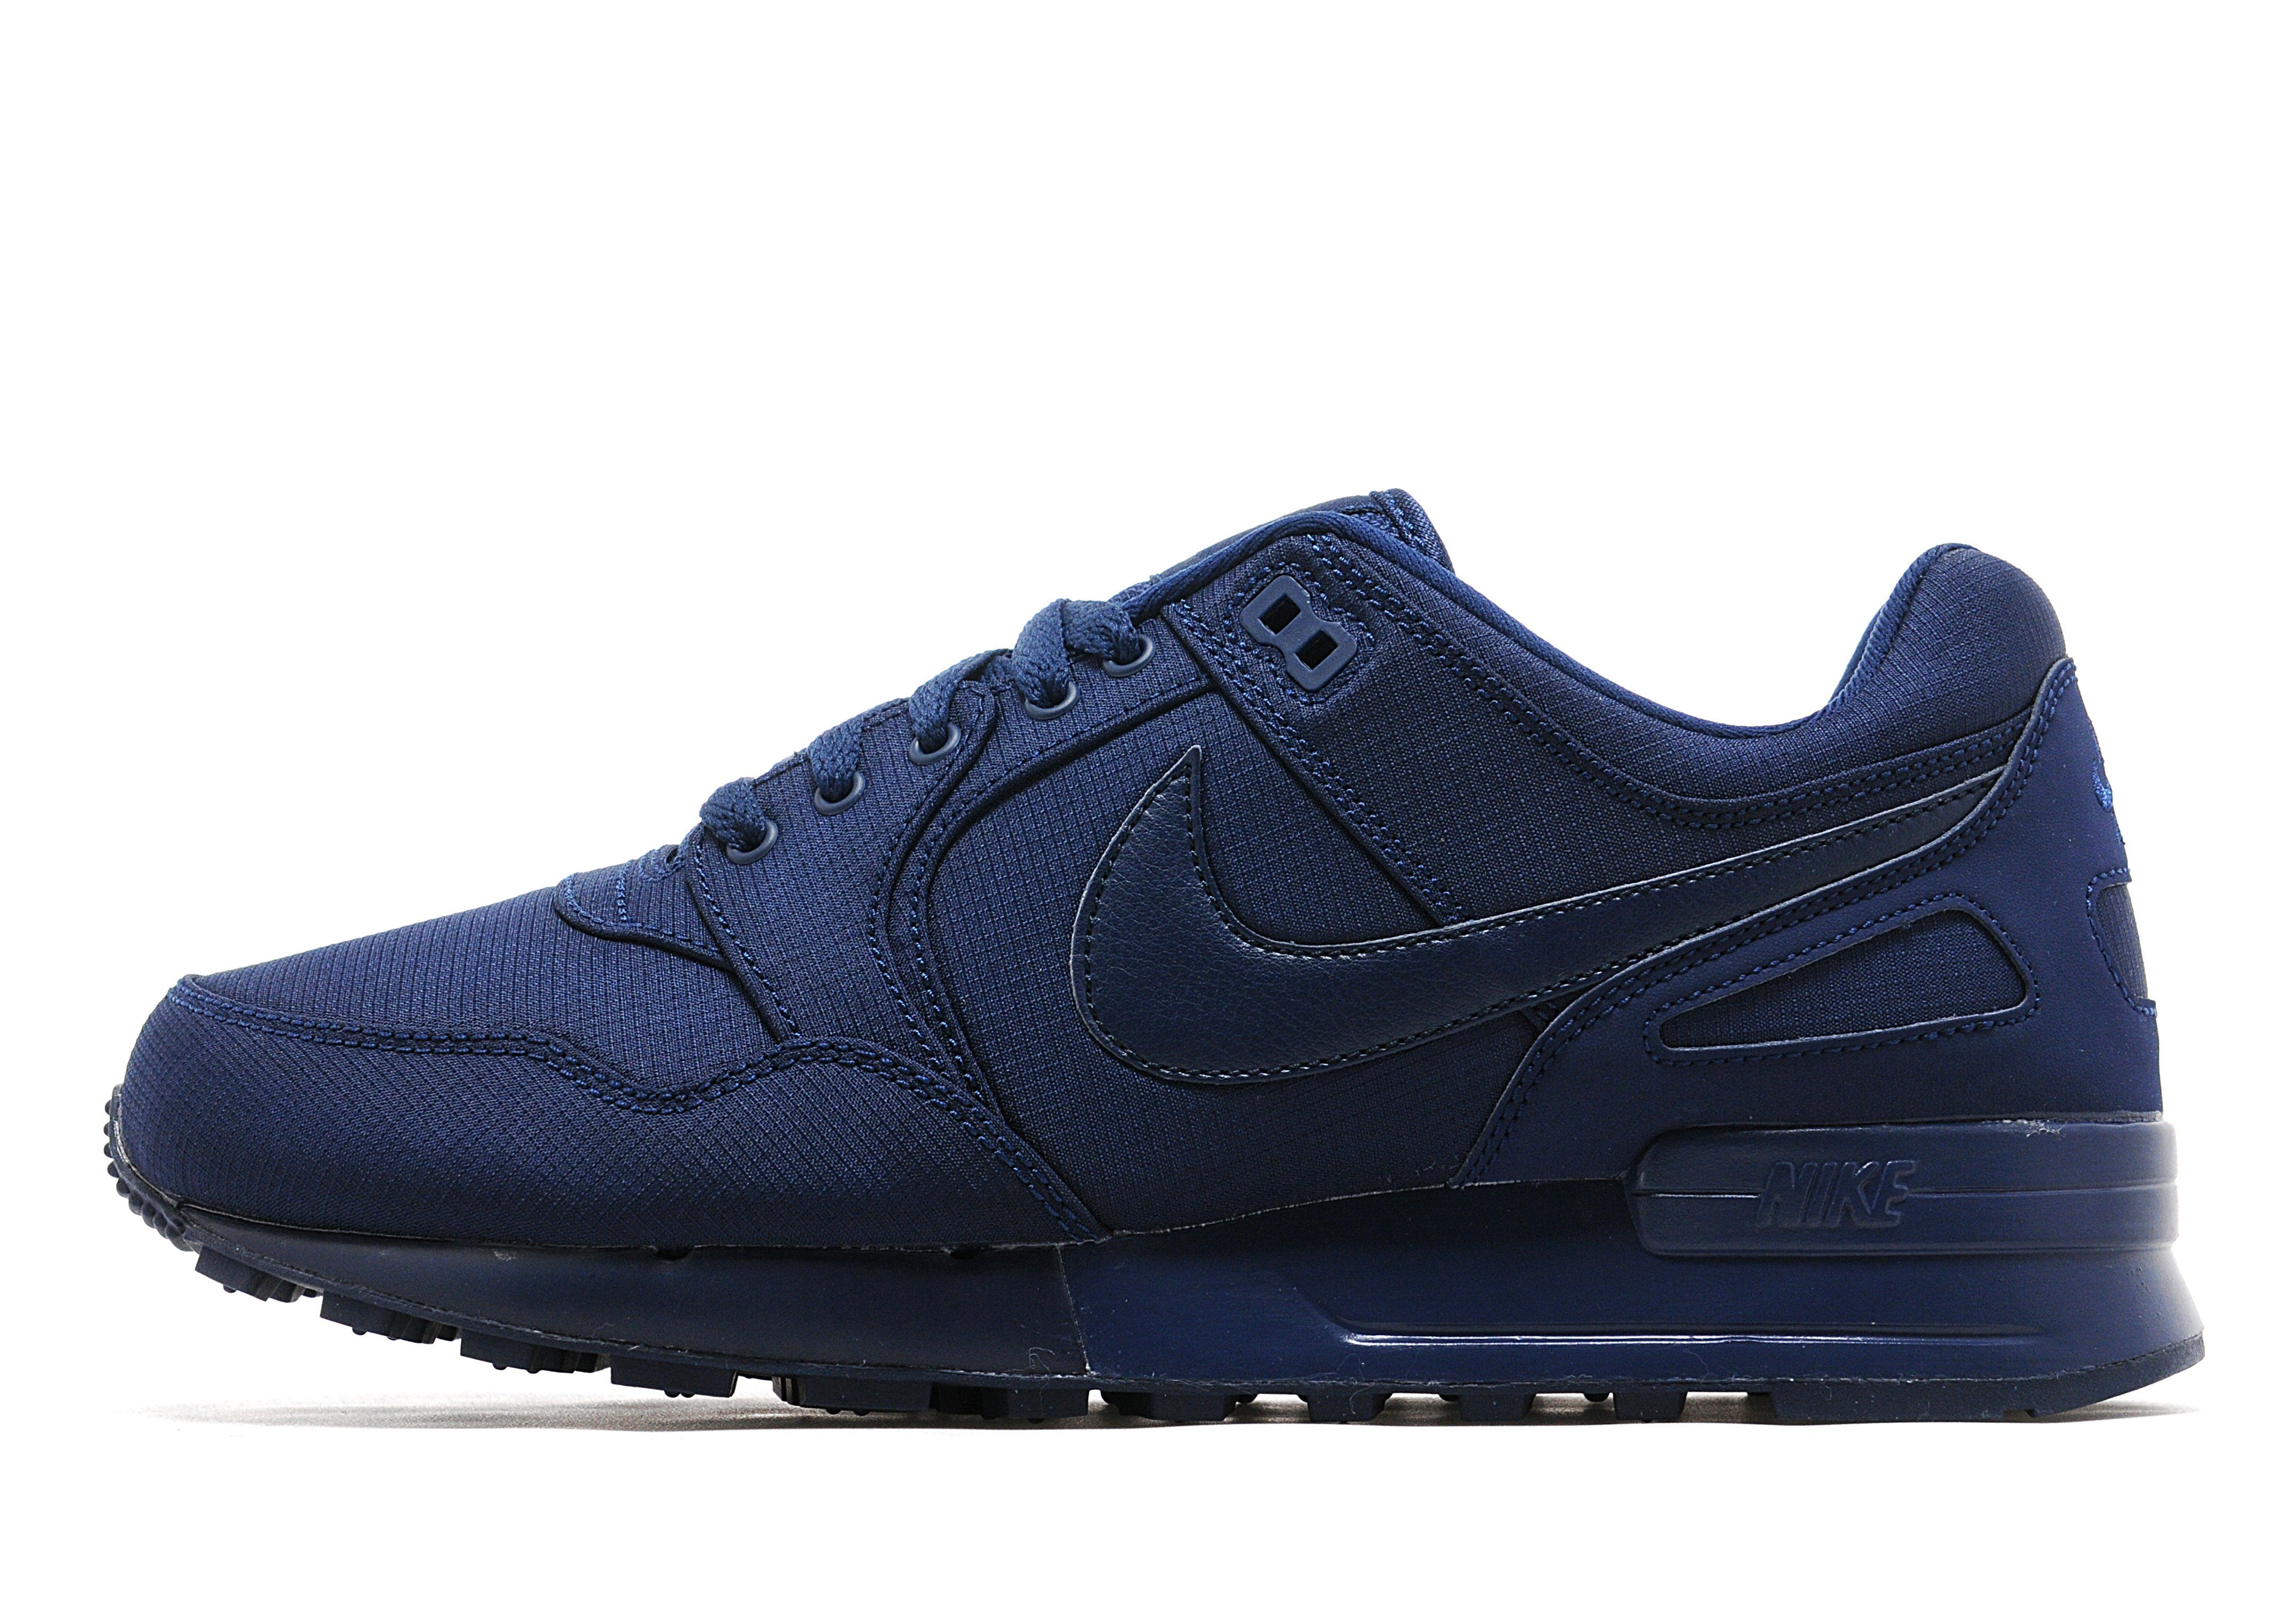 nike pegasus 89 txt jd sports. Black Bedroom Furniture Sets. Home Design Ideas